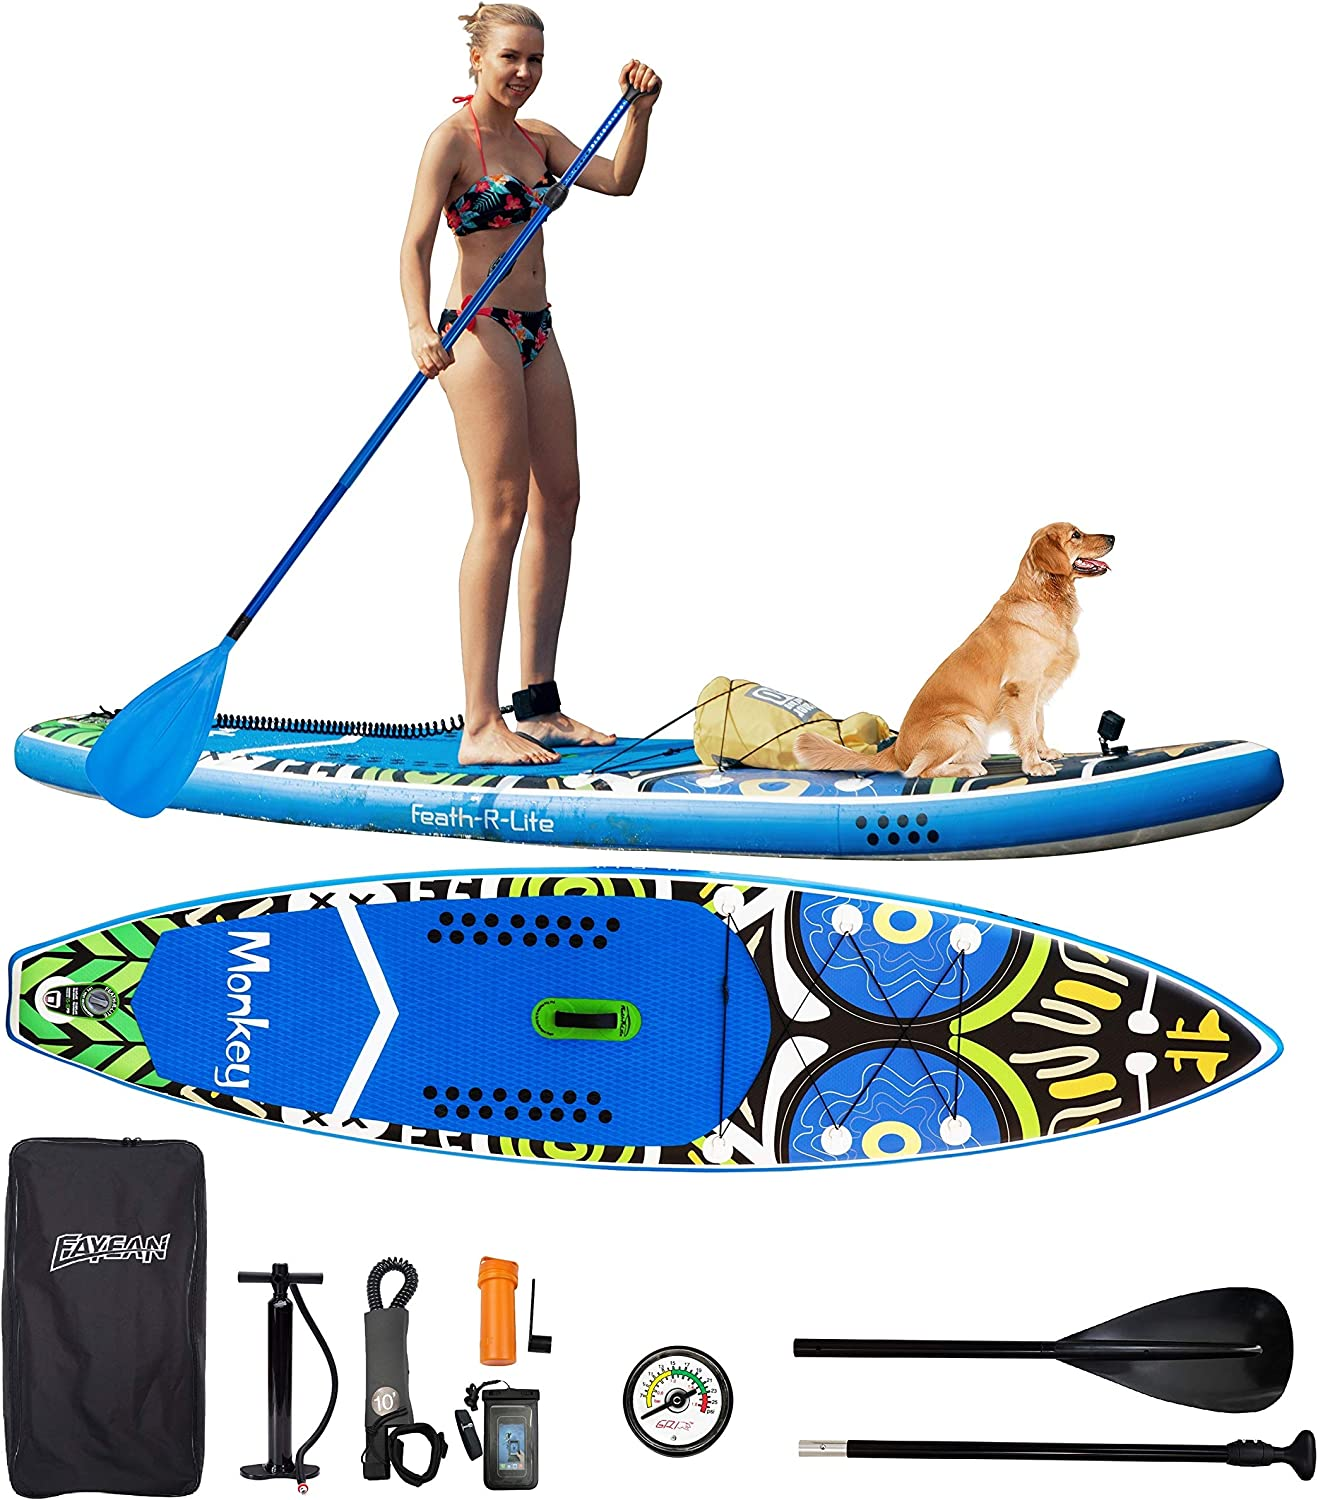 FAYEAN Inflatable Stand Up Paddle Board Cruise SUP ISUP Board 11' x 33''x 6'' Thick Includes Hand Pump, Paddle, Backpack, Fin, Coil Leash and Universal Waterproof Case